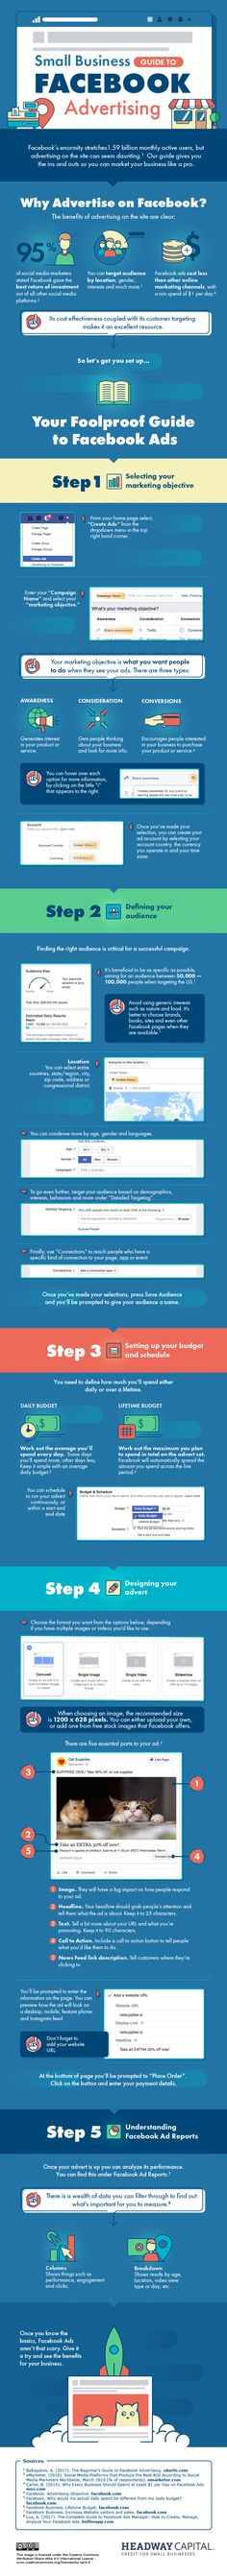 A Small Business Guide to Facebook Advertising [Infographic]